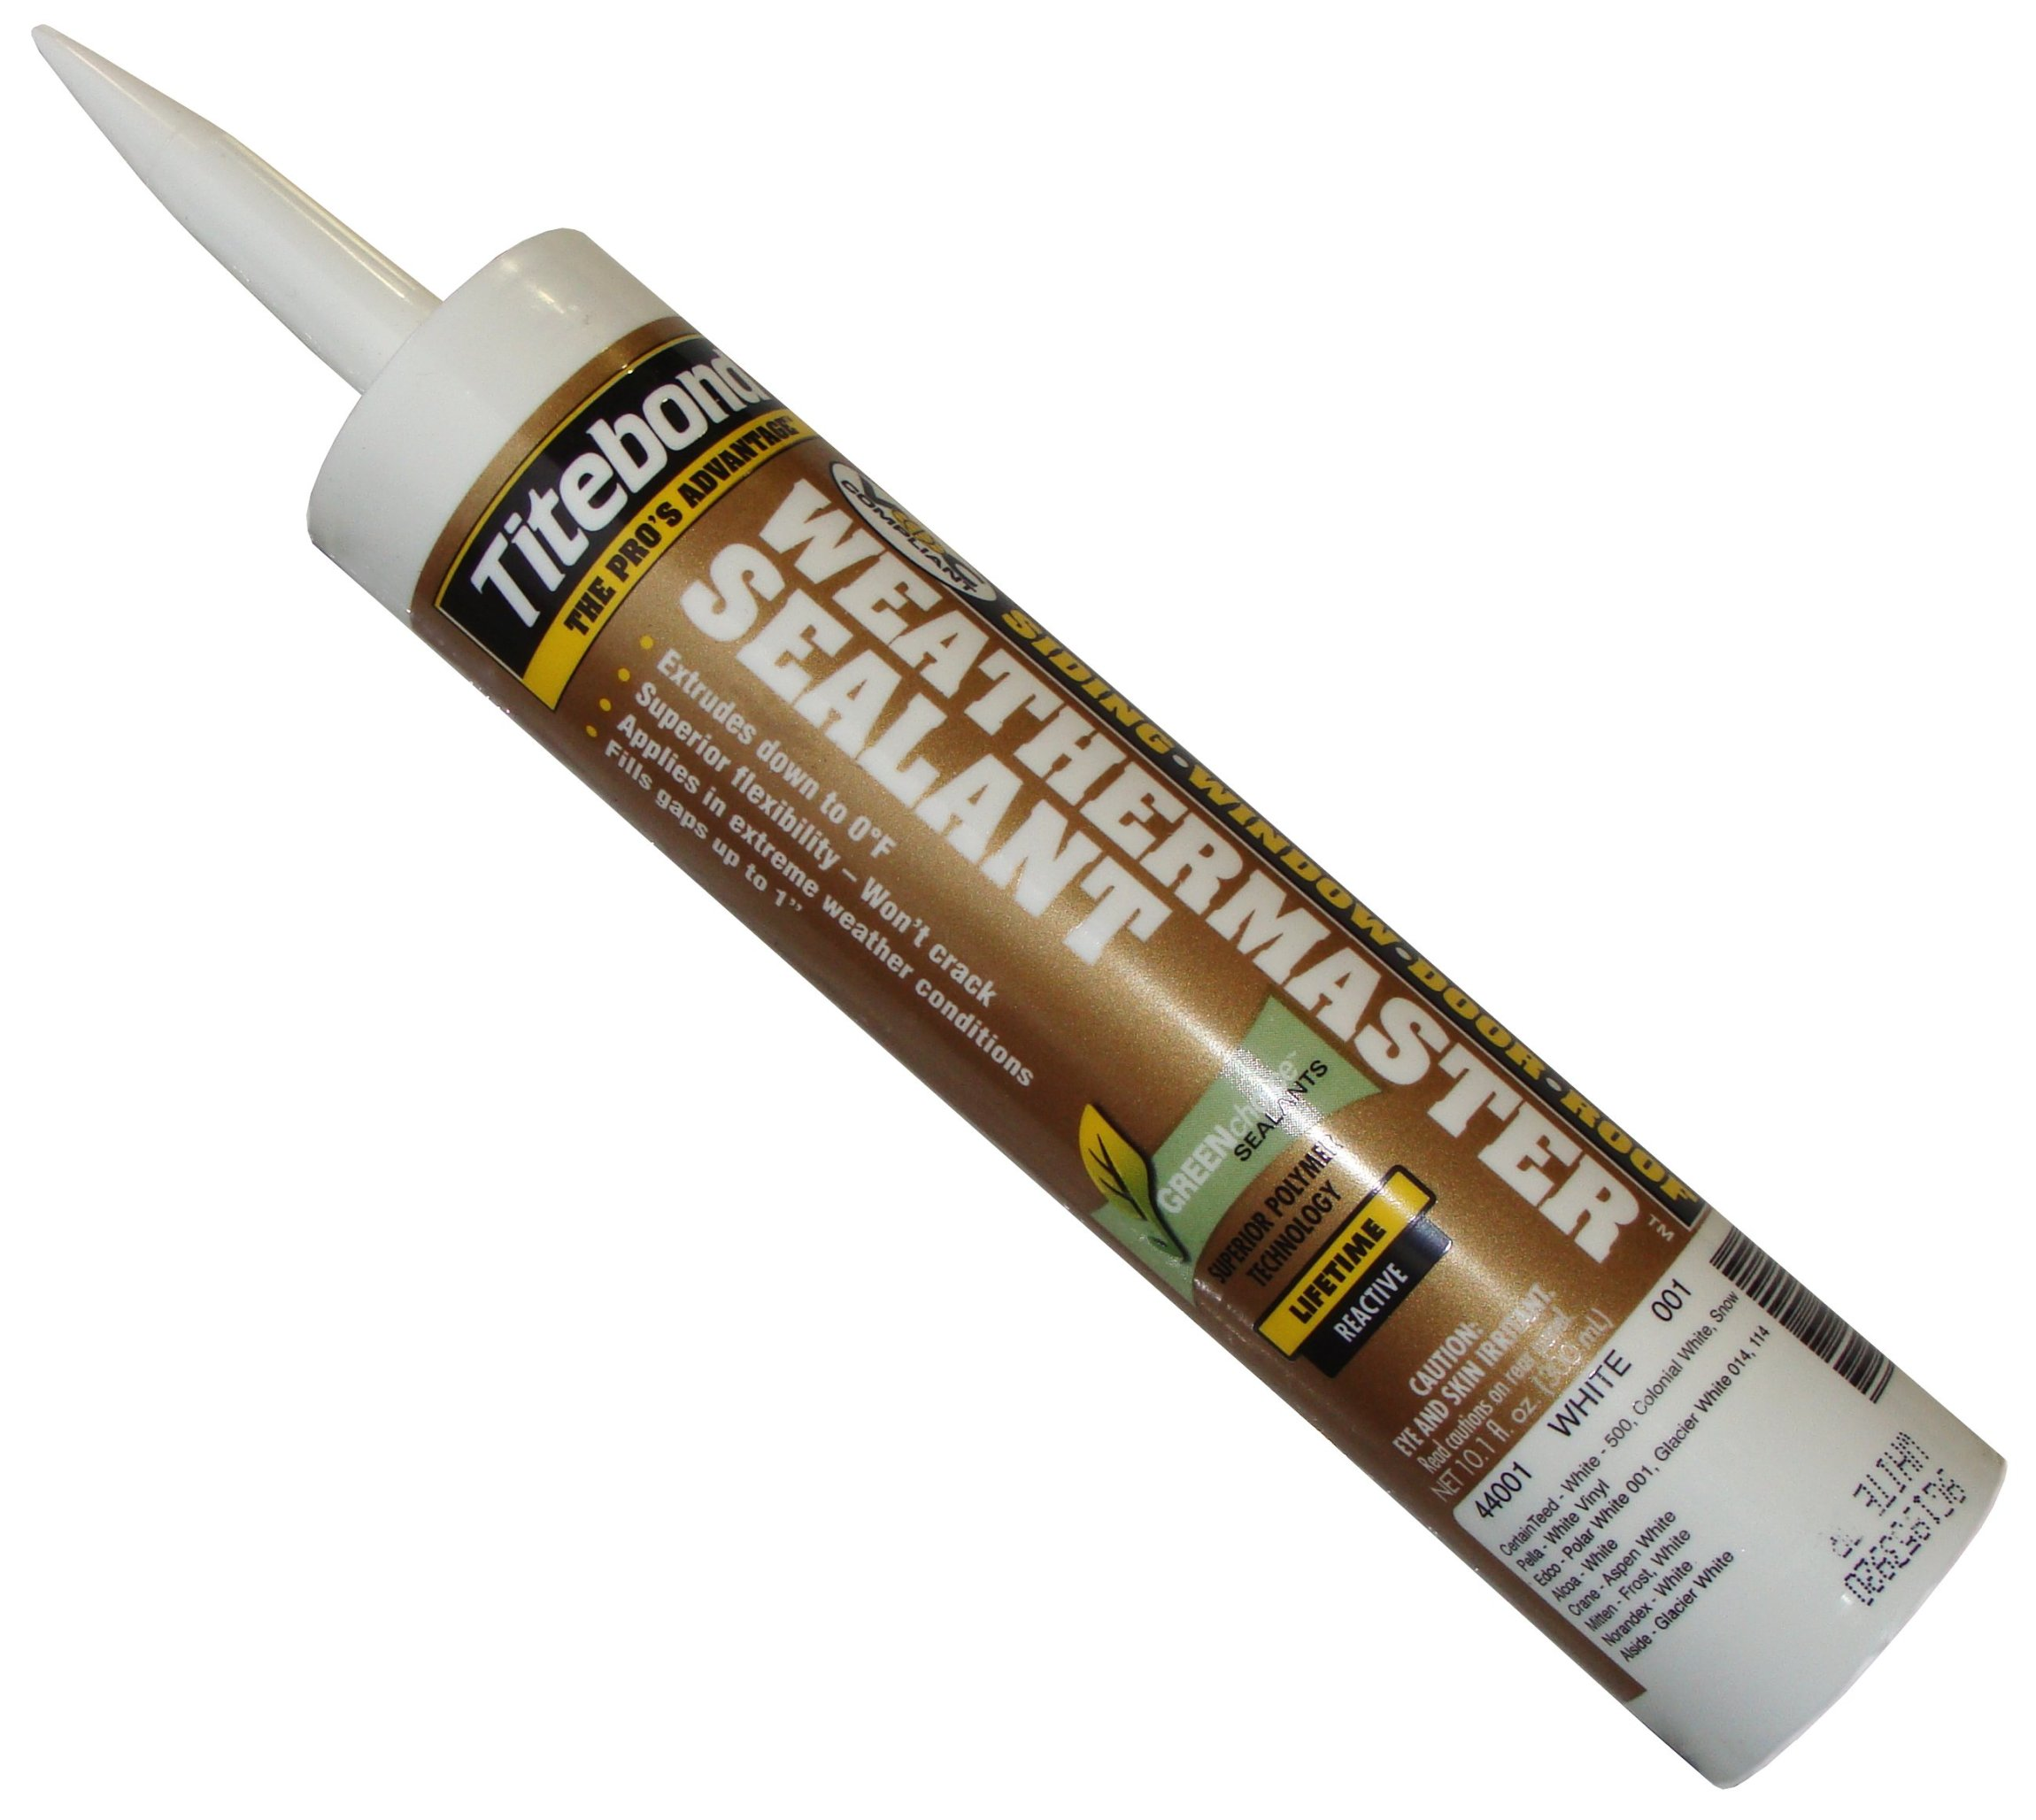 Gutter Sealants Titebond Weathermaster Gutter Sealant